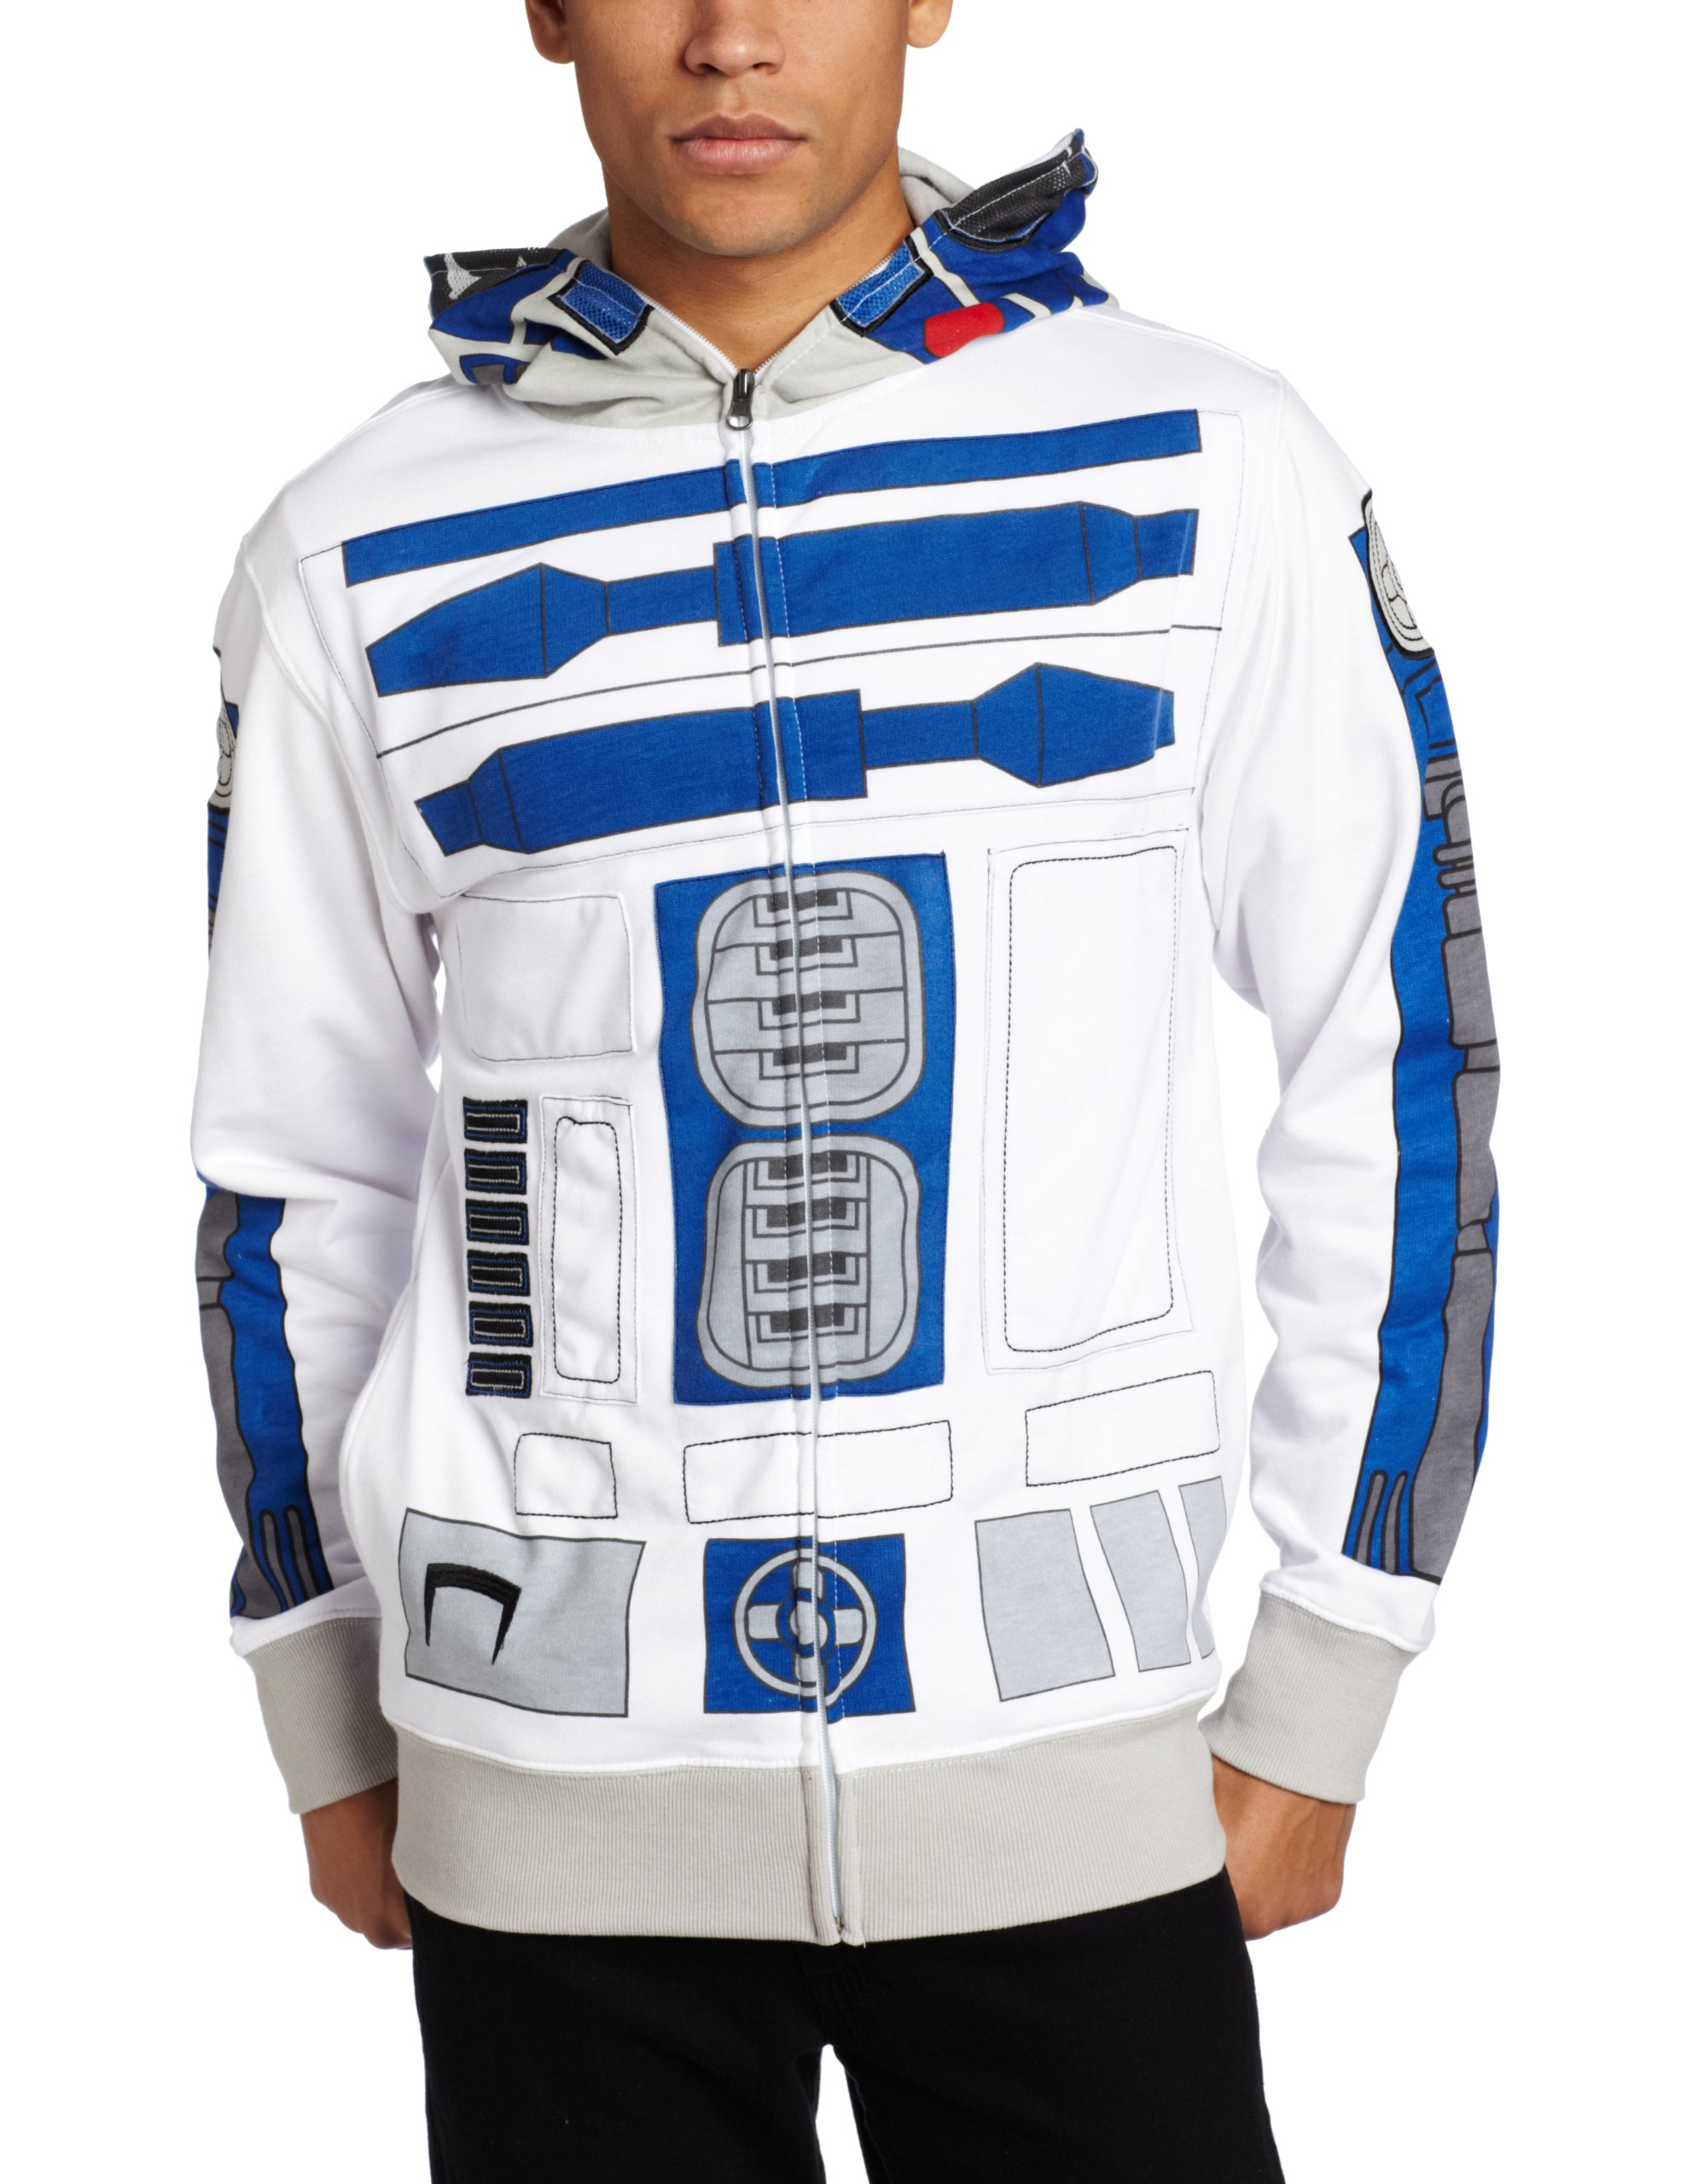 Star Wars I Am R2-D2 Costume Hoodie Sweatshirt